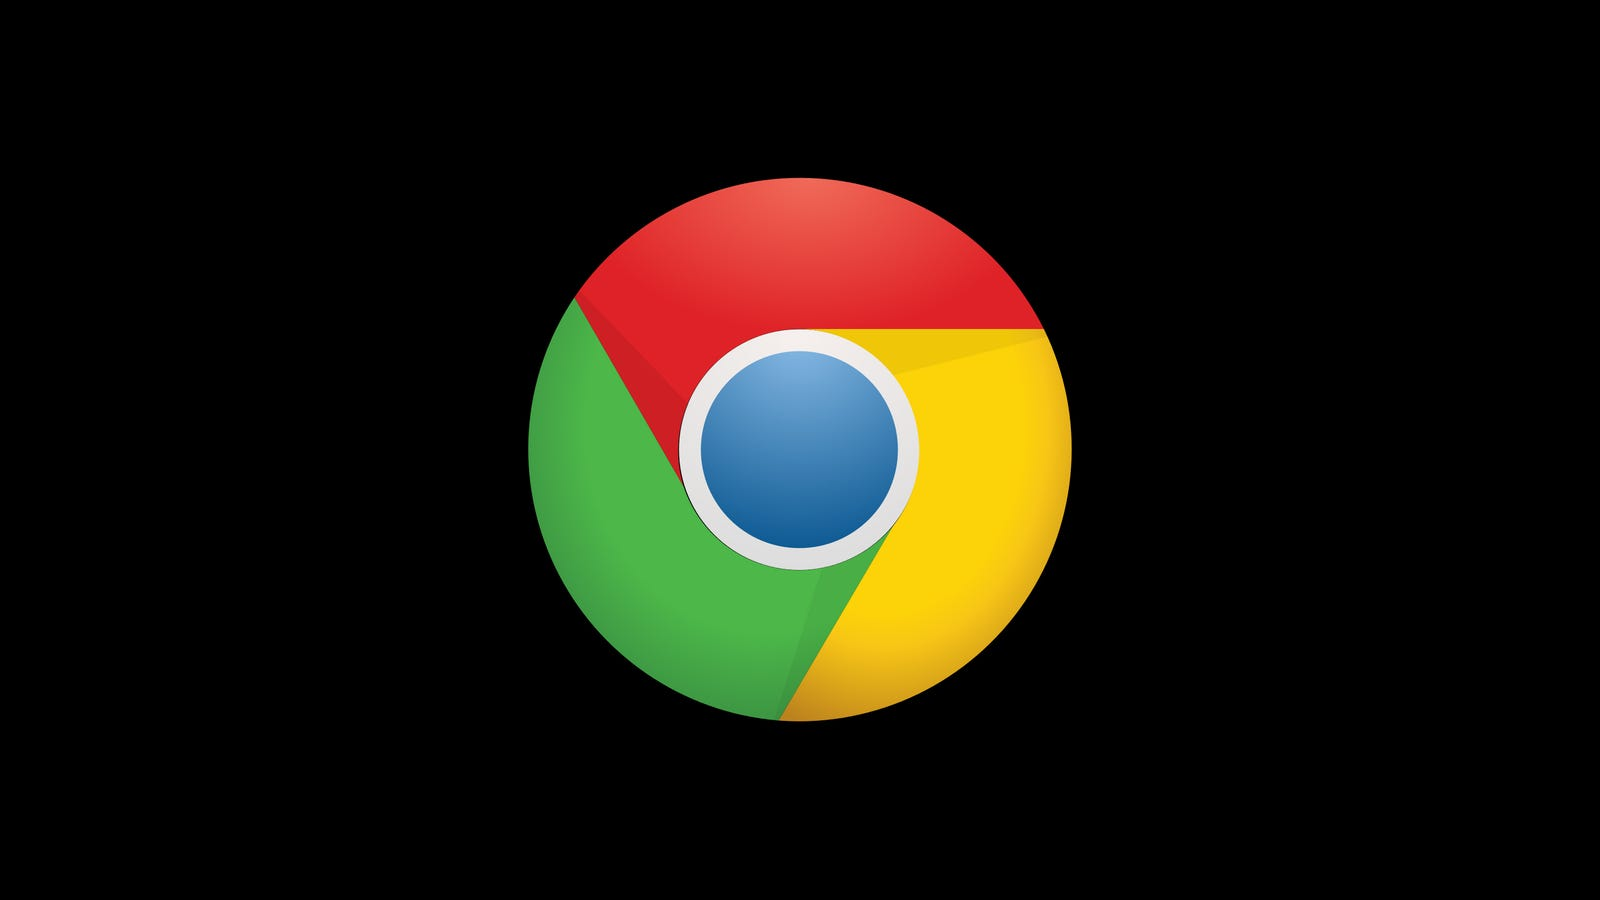 Jew Detector: What Happened With That Anti-Semitic Chrome Extension